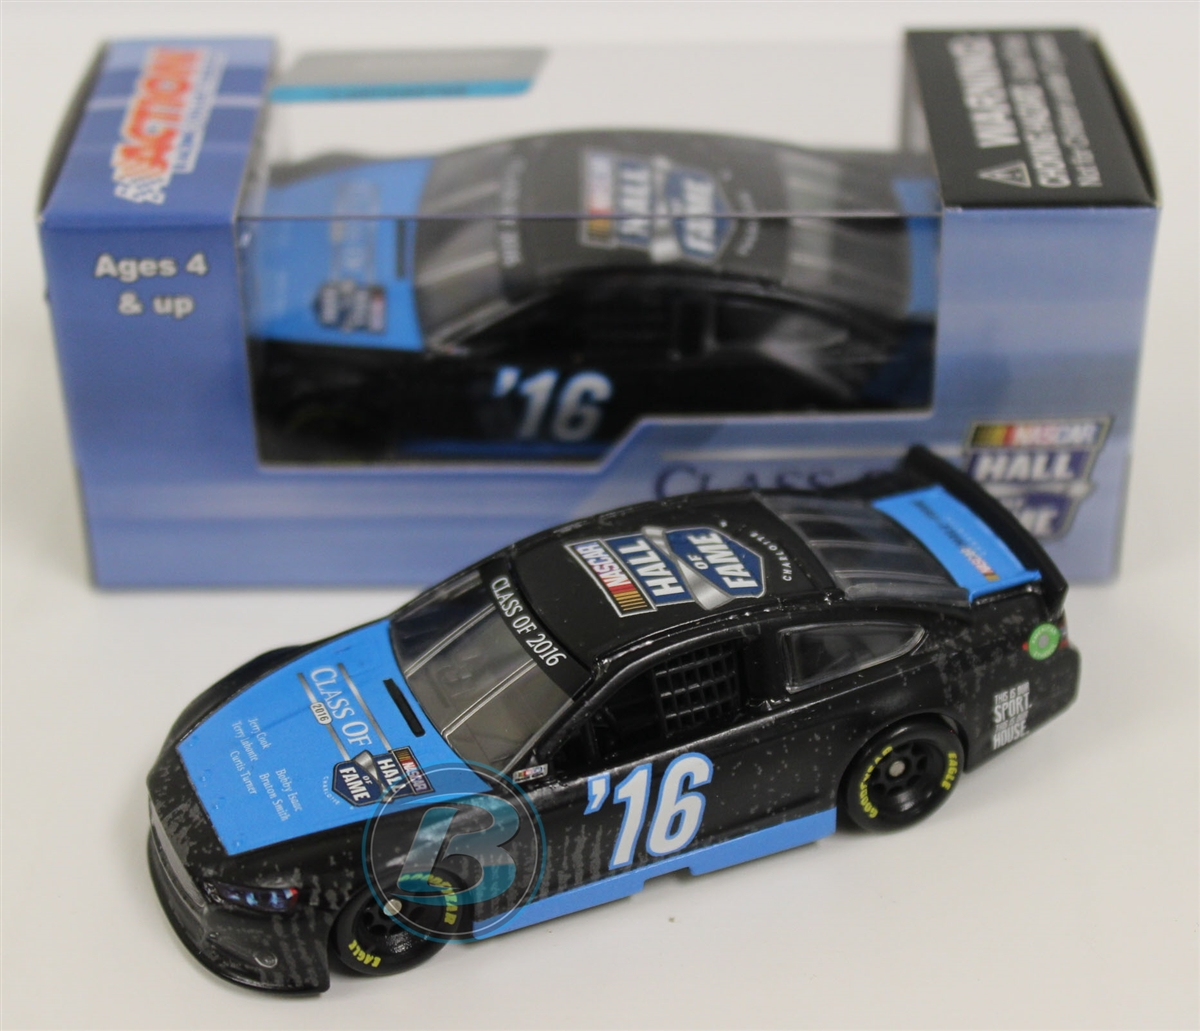 Nascar Hall Of Fame Class Of 2016 1:64 Nascar Diecast by Lionel Racing